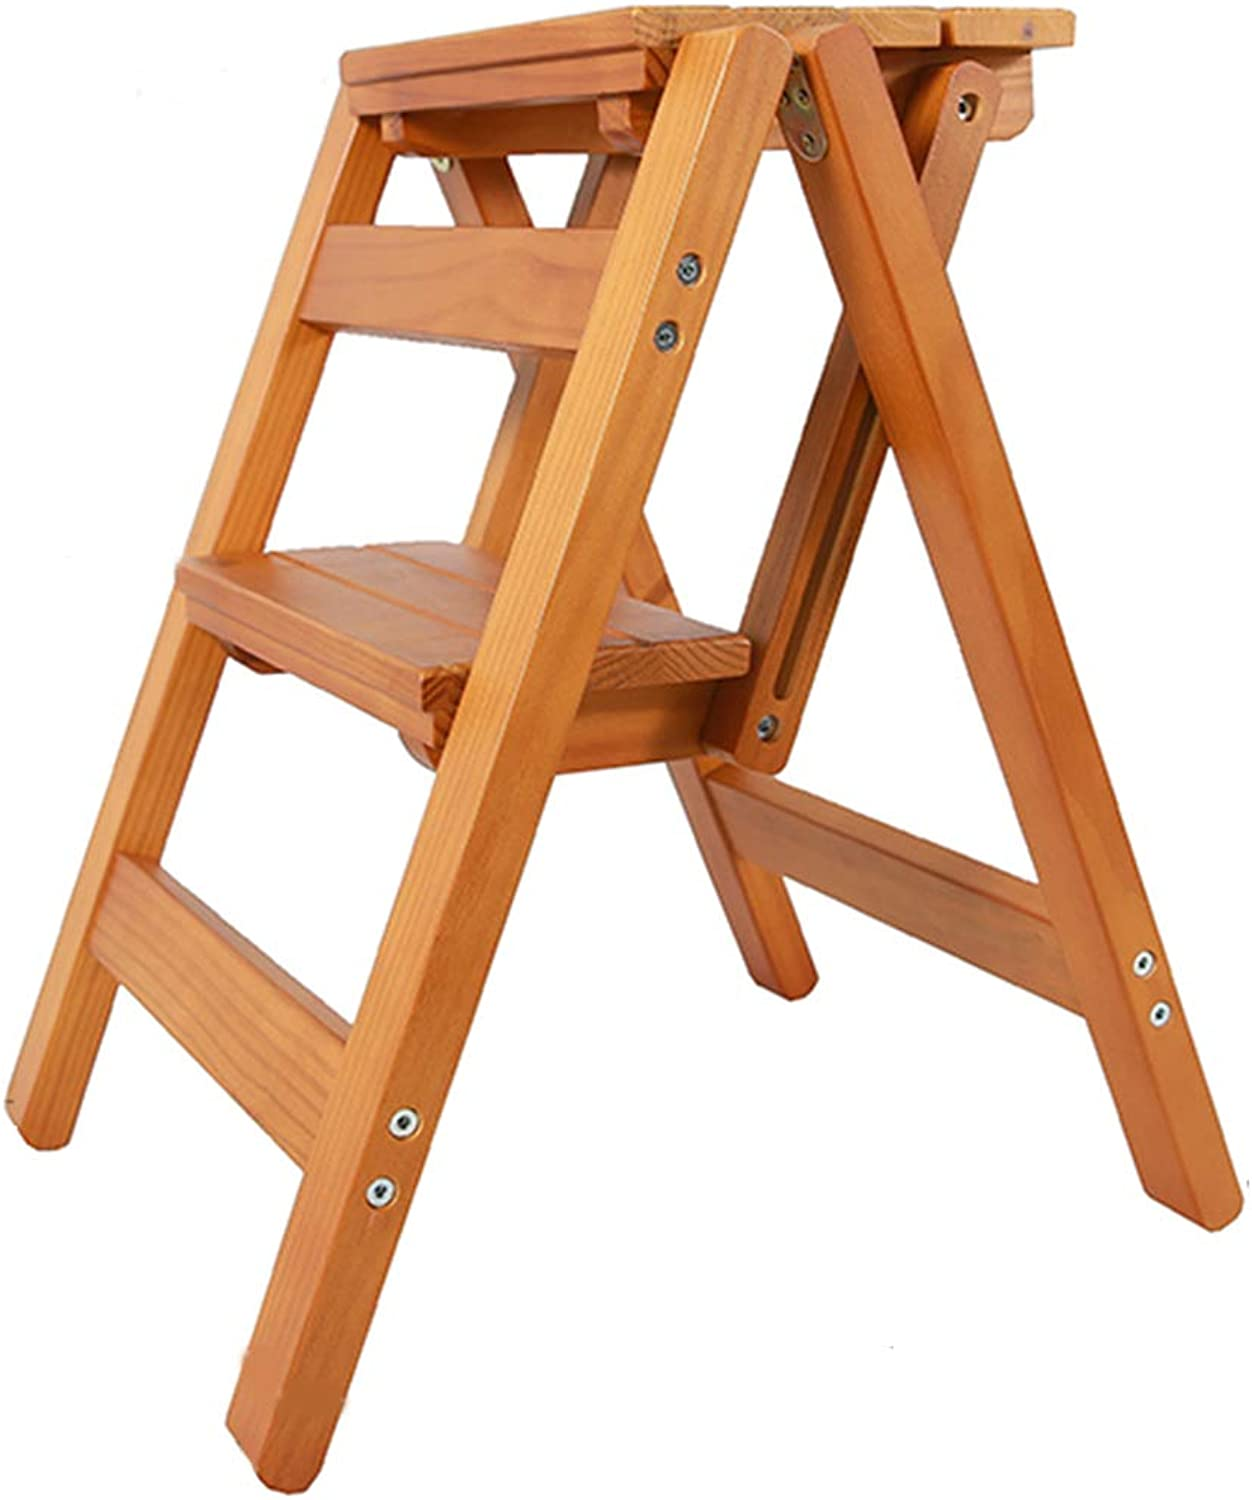 Solid Wood Step Stool 2 Layer Folding Stepladder Foot Stool